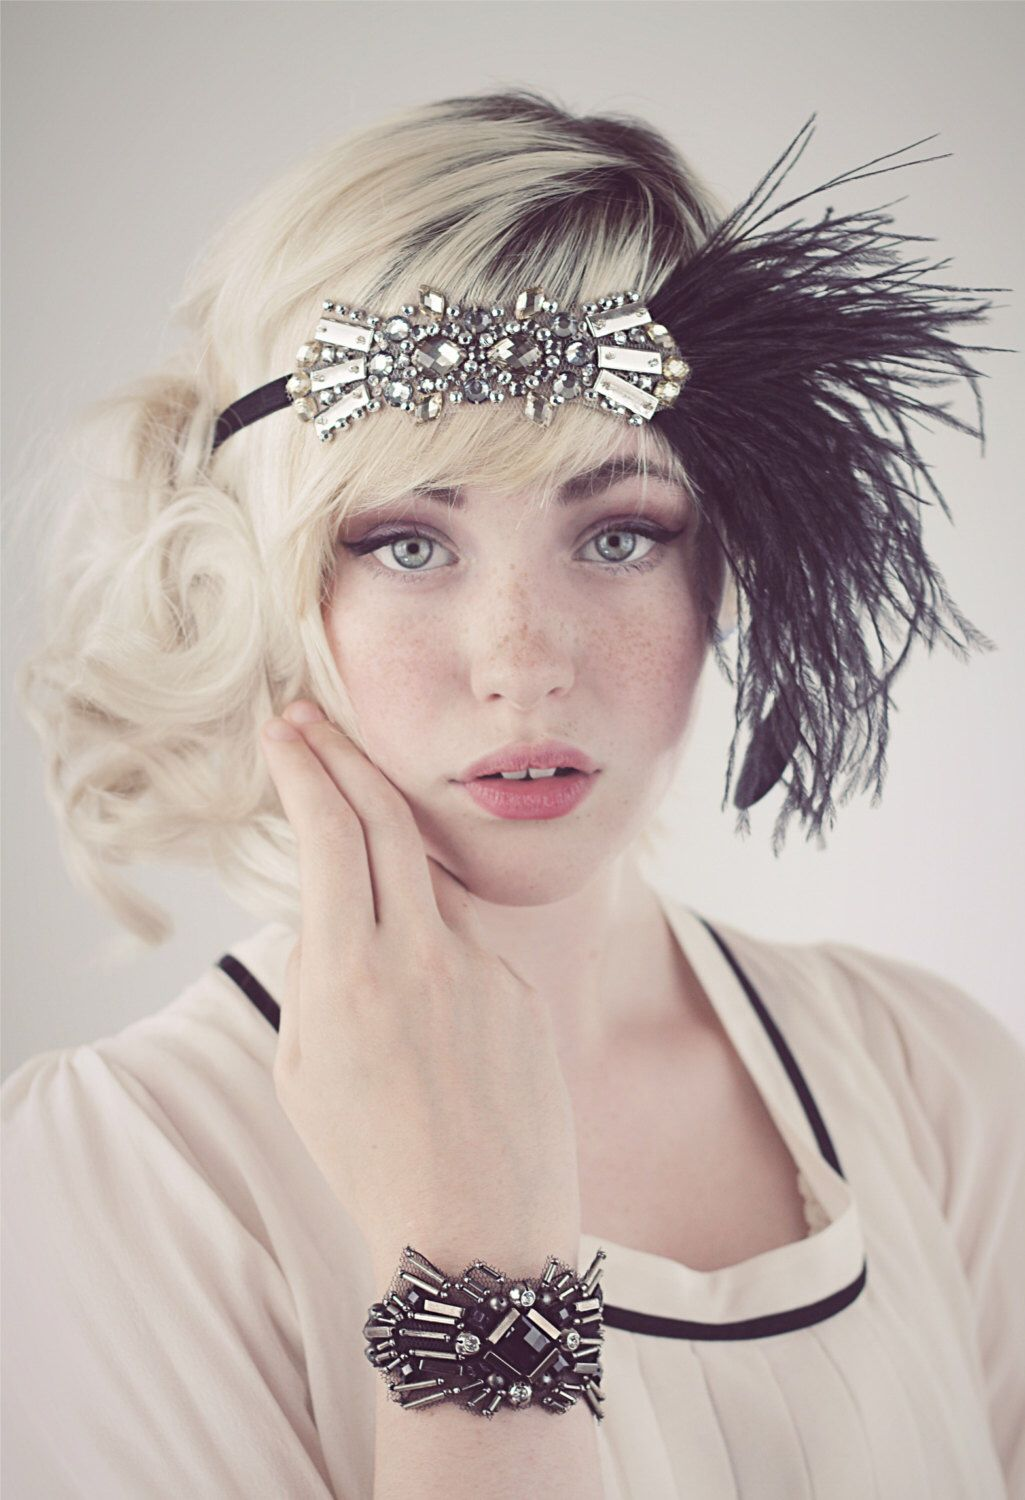 Deco Flapper Headband Antique Silver Beading with Black, Silver Gray or Charcoal Gray Ostrich Feather Headband by BaroqueAndRoll on Etsy https://www.etsy.com/listing/159361395/deco-flapper-headband-antique-silver